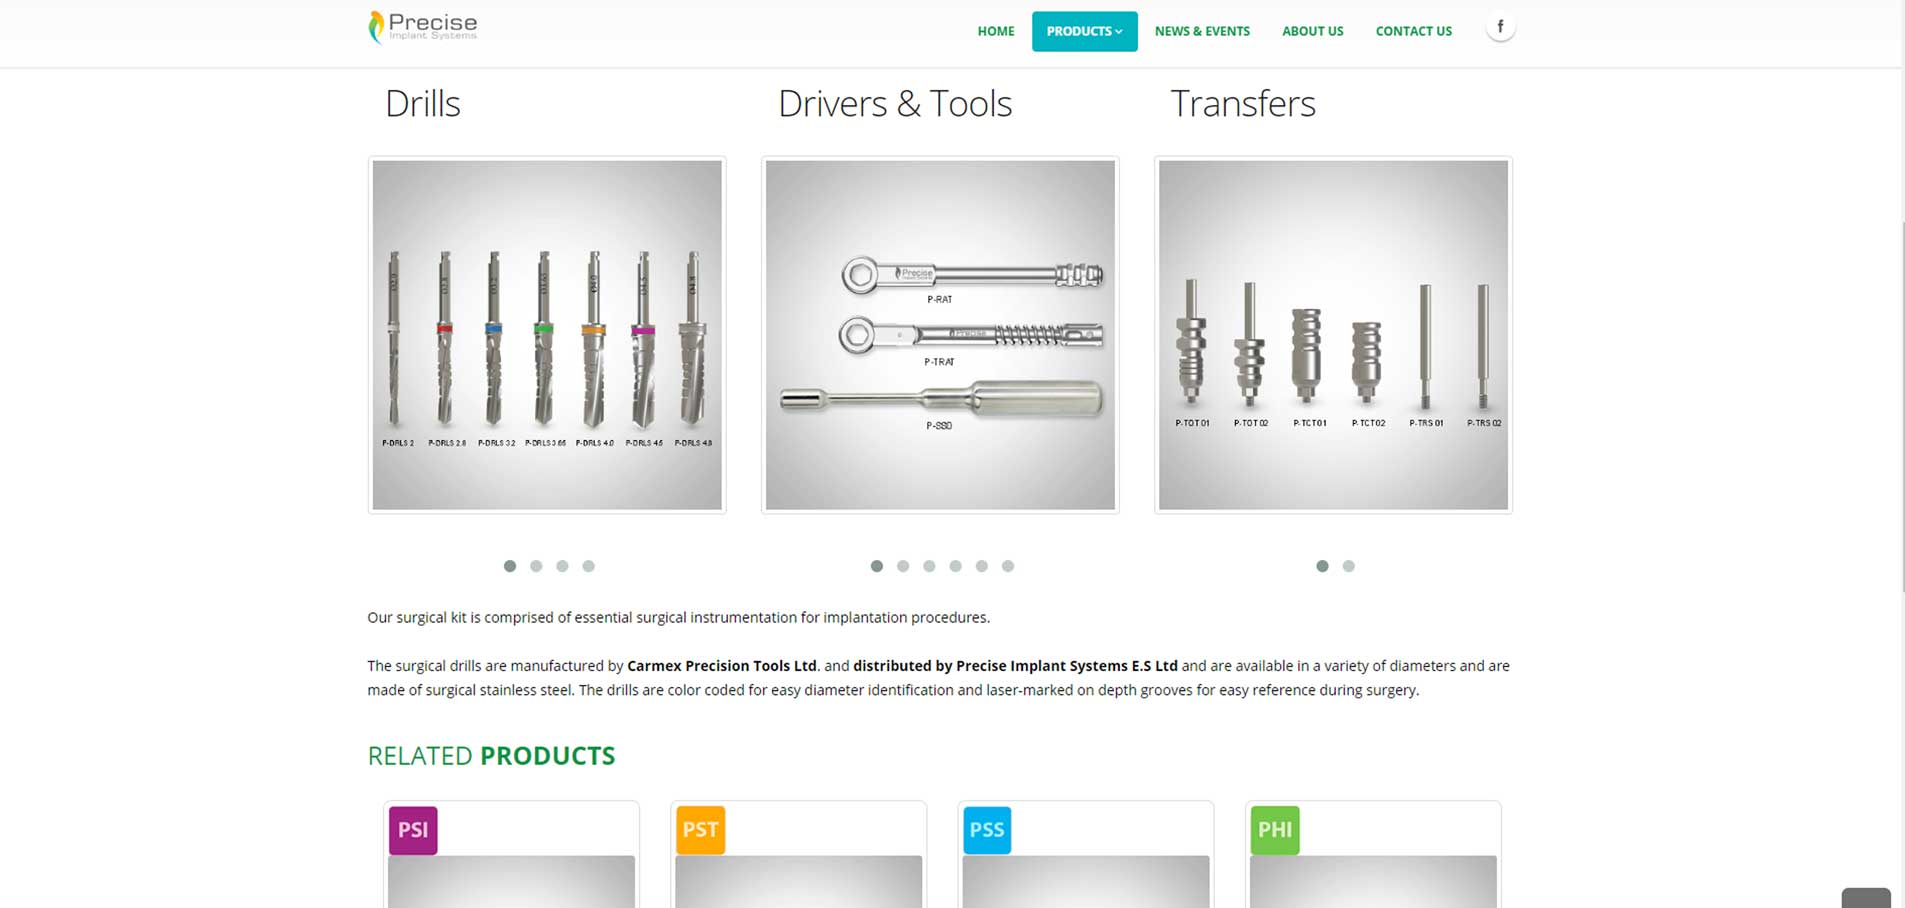 PRECISE products webpage